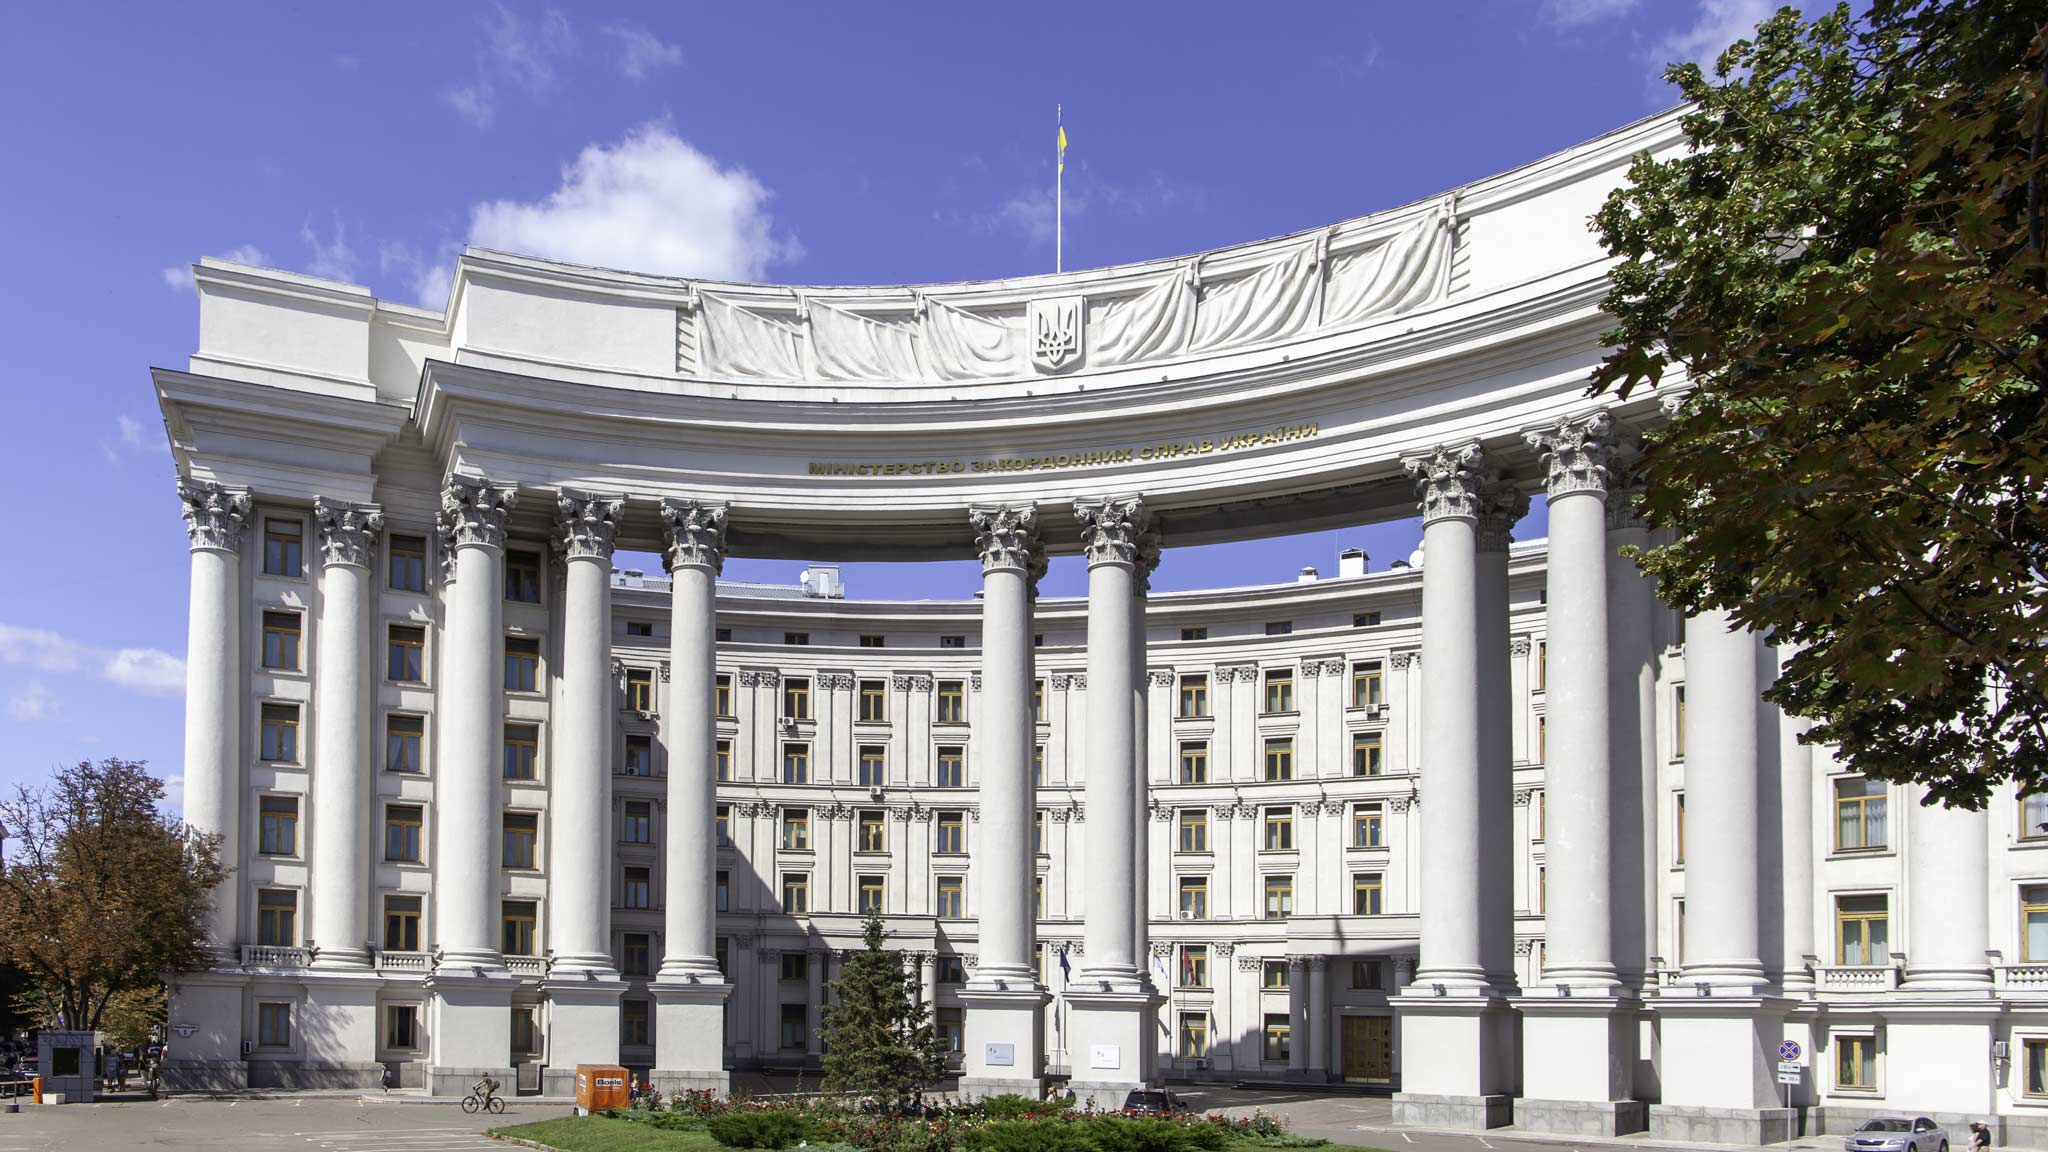 A bold building in Kyiv with towering pillars